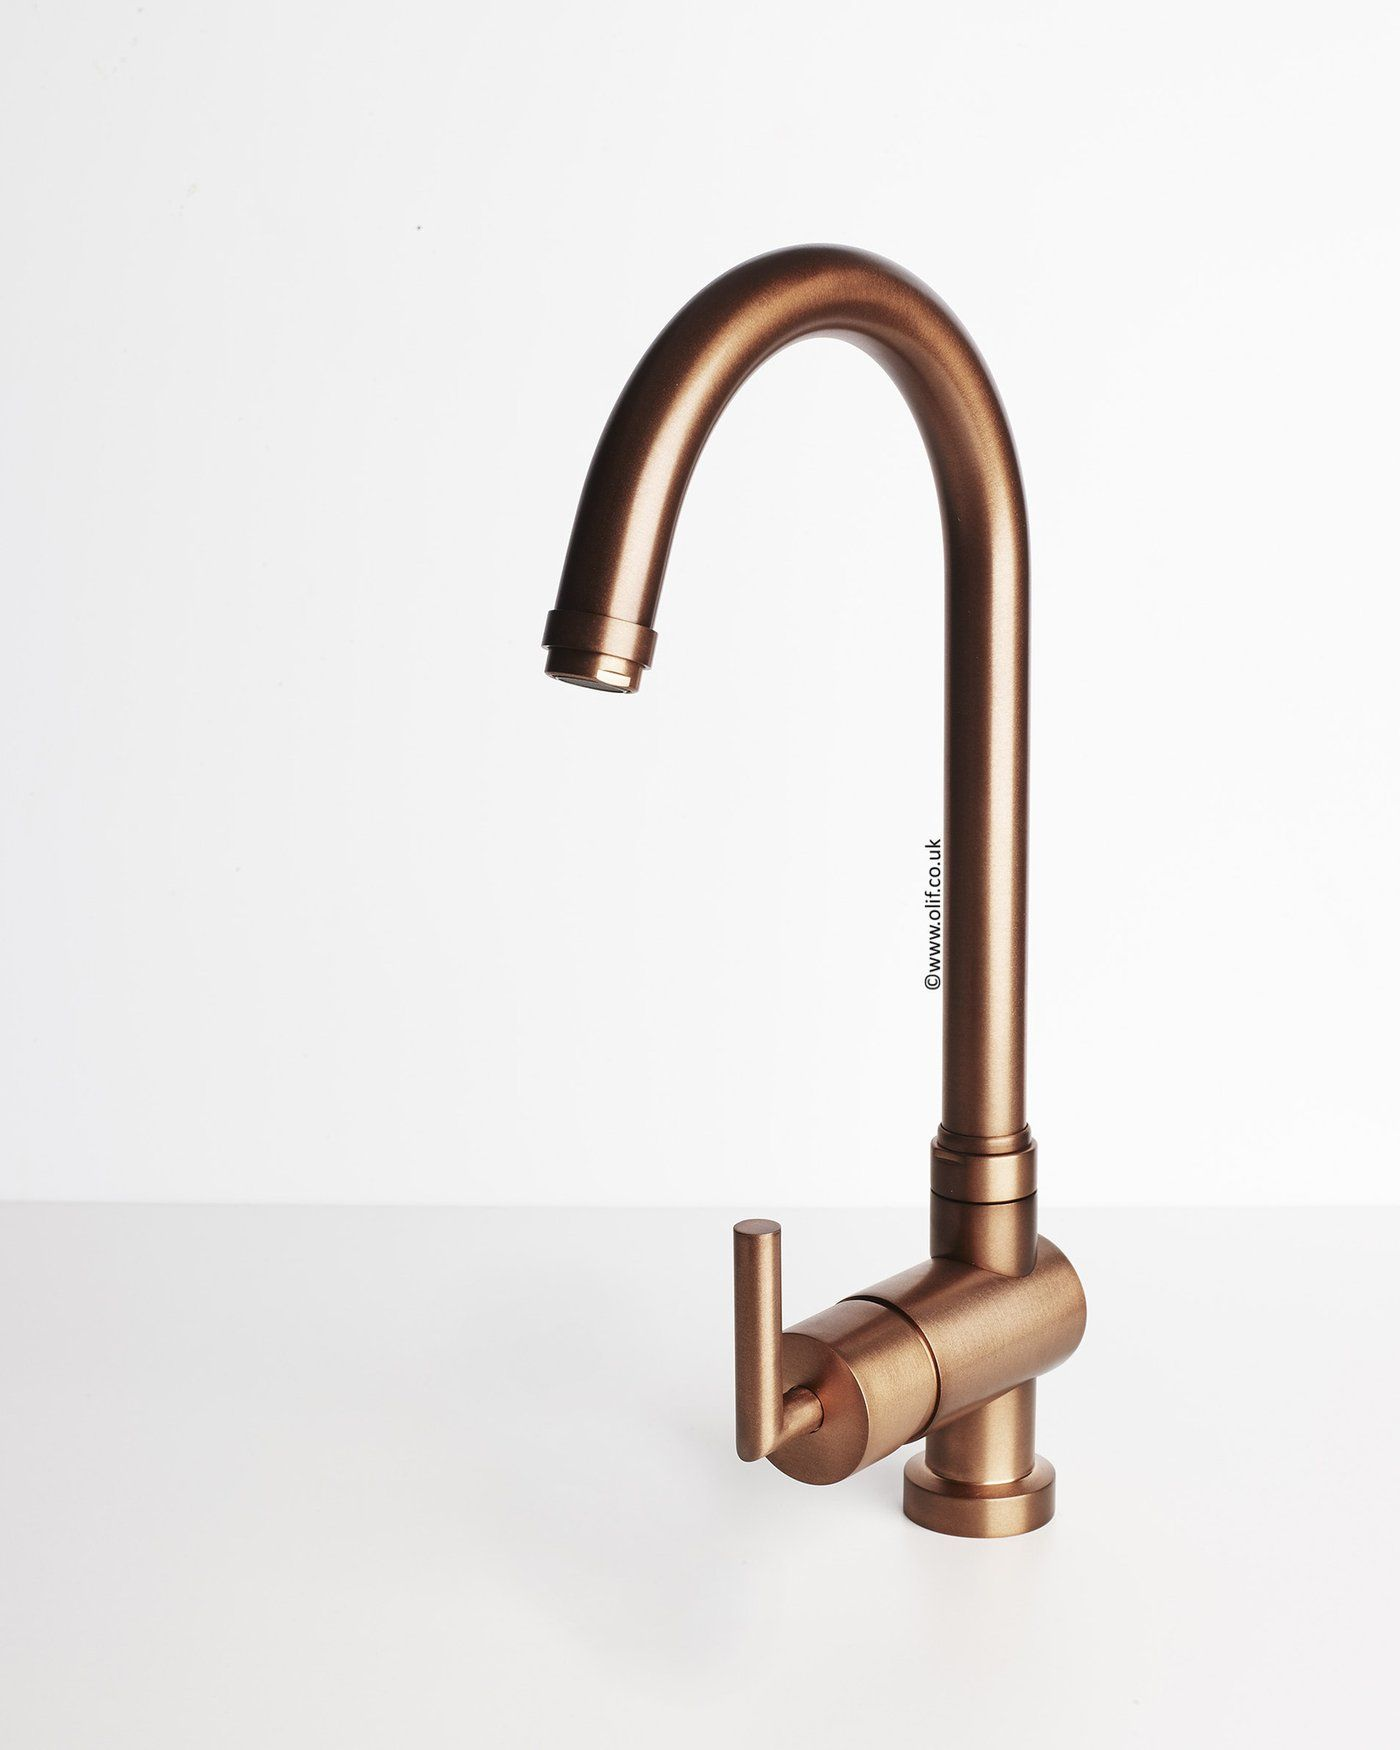 Alto Rustic Copper, kitchen mixer tap | Bennett St ideas